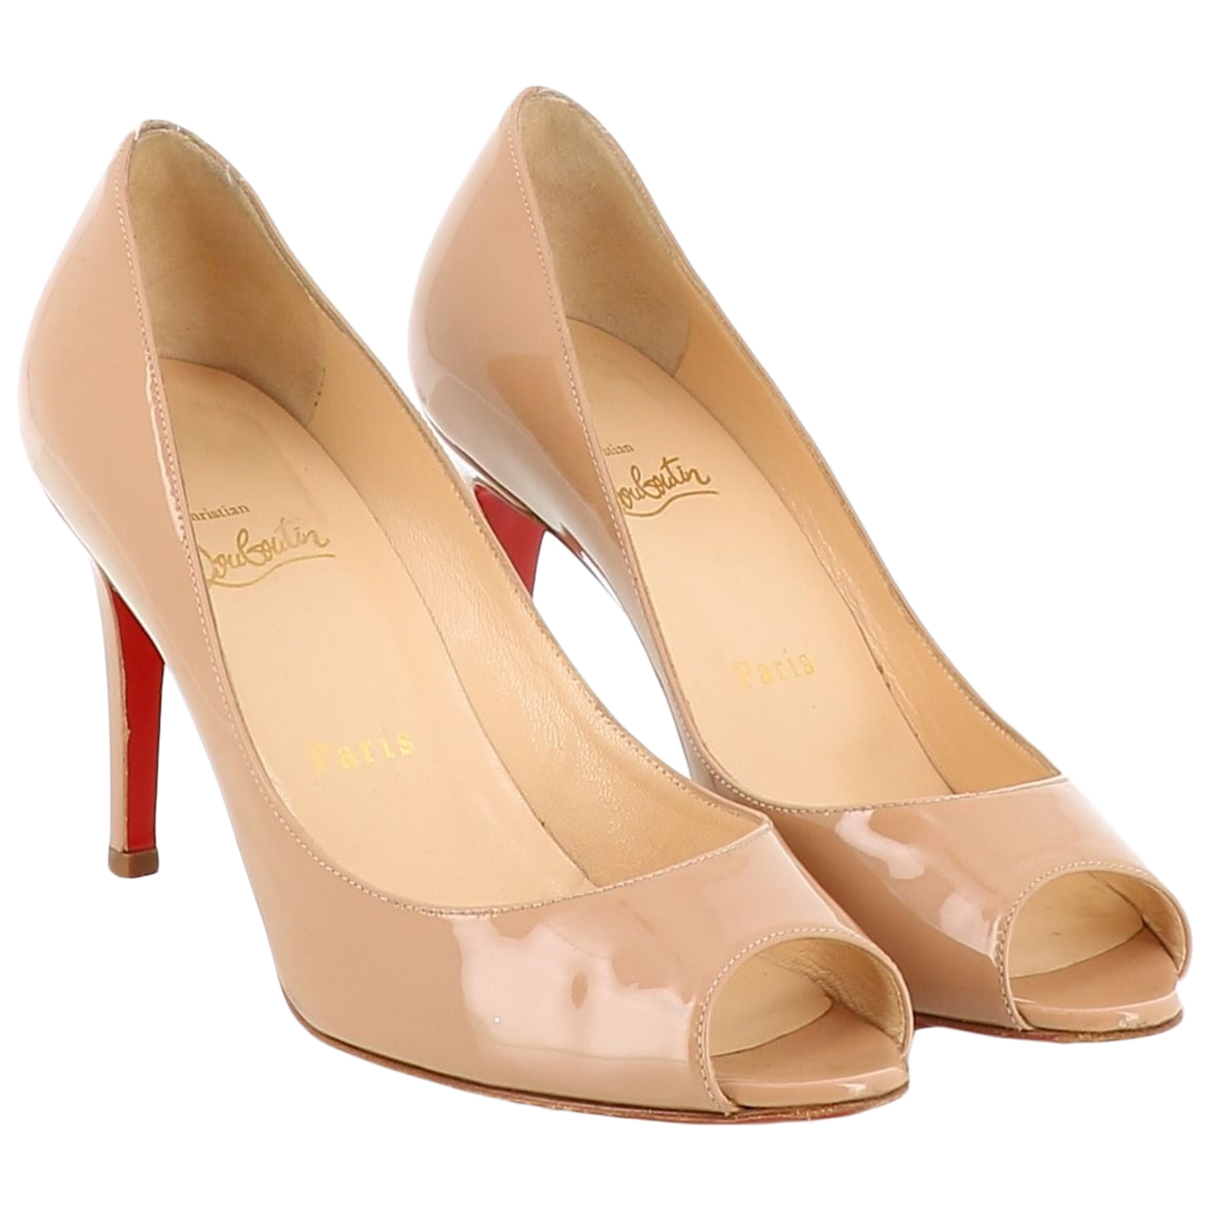 Christian Louboutin \N Beige Patent leather Sandals for Women 36 EU